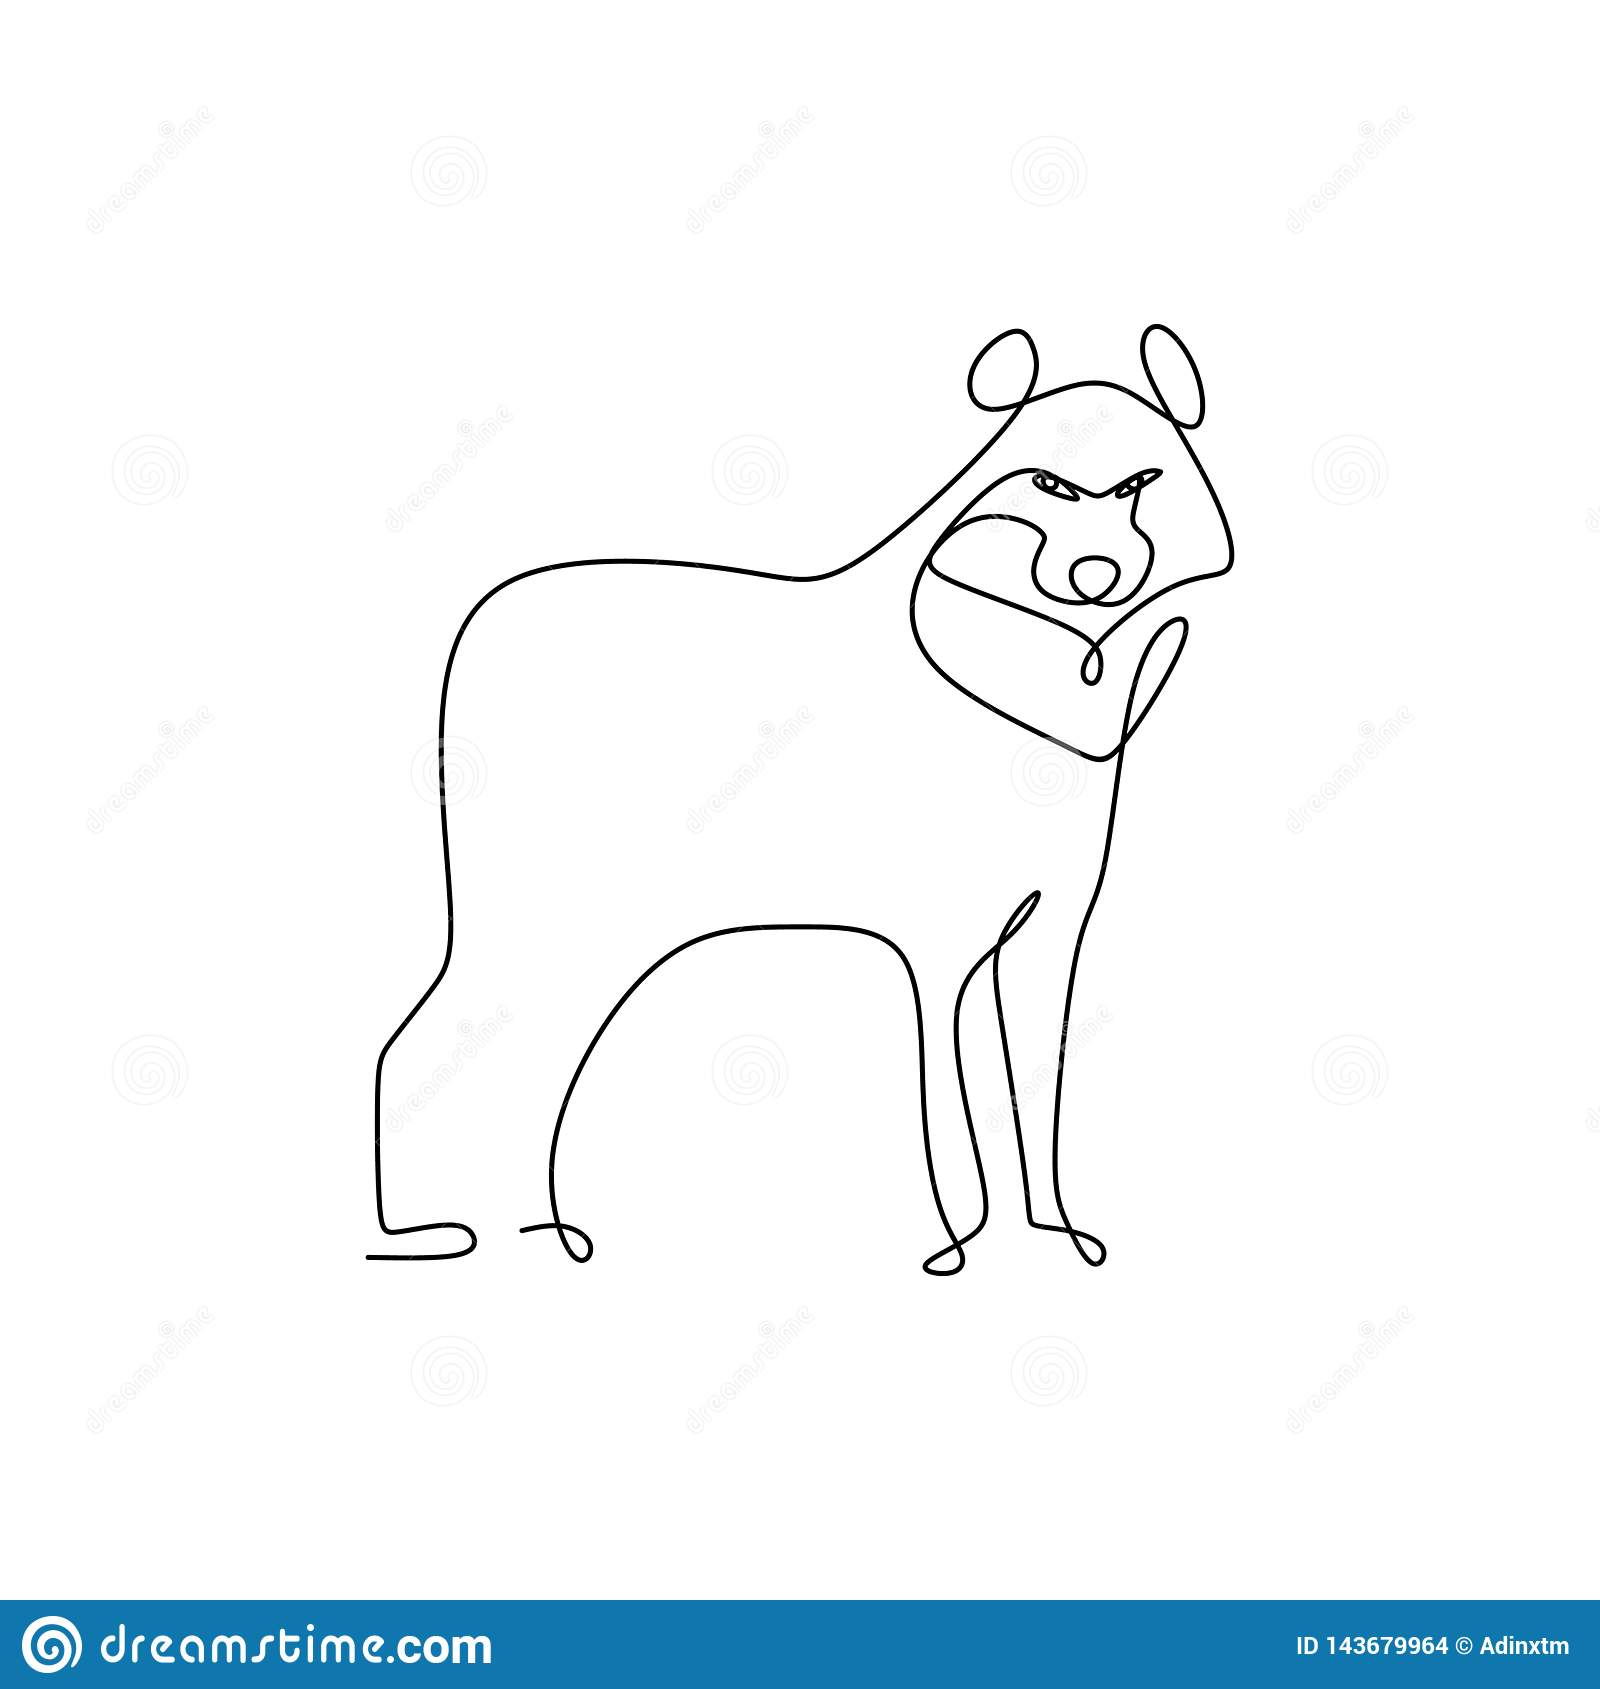 Continuous Line Drawing Of Wolf Animals With A Simple Design